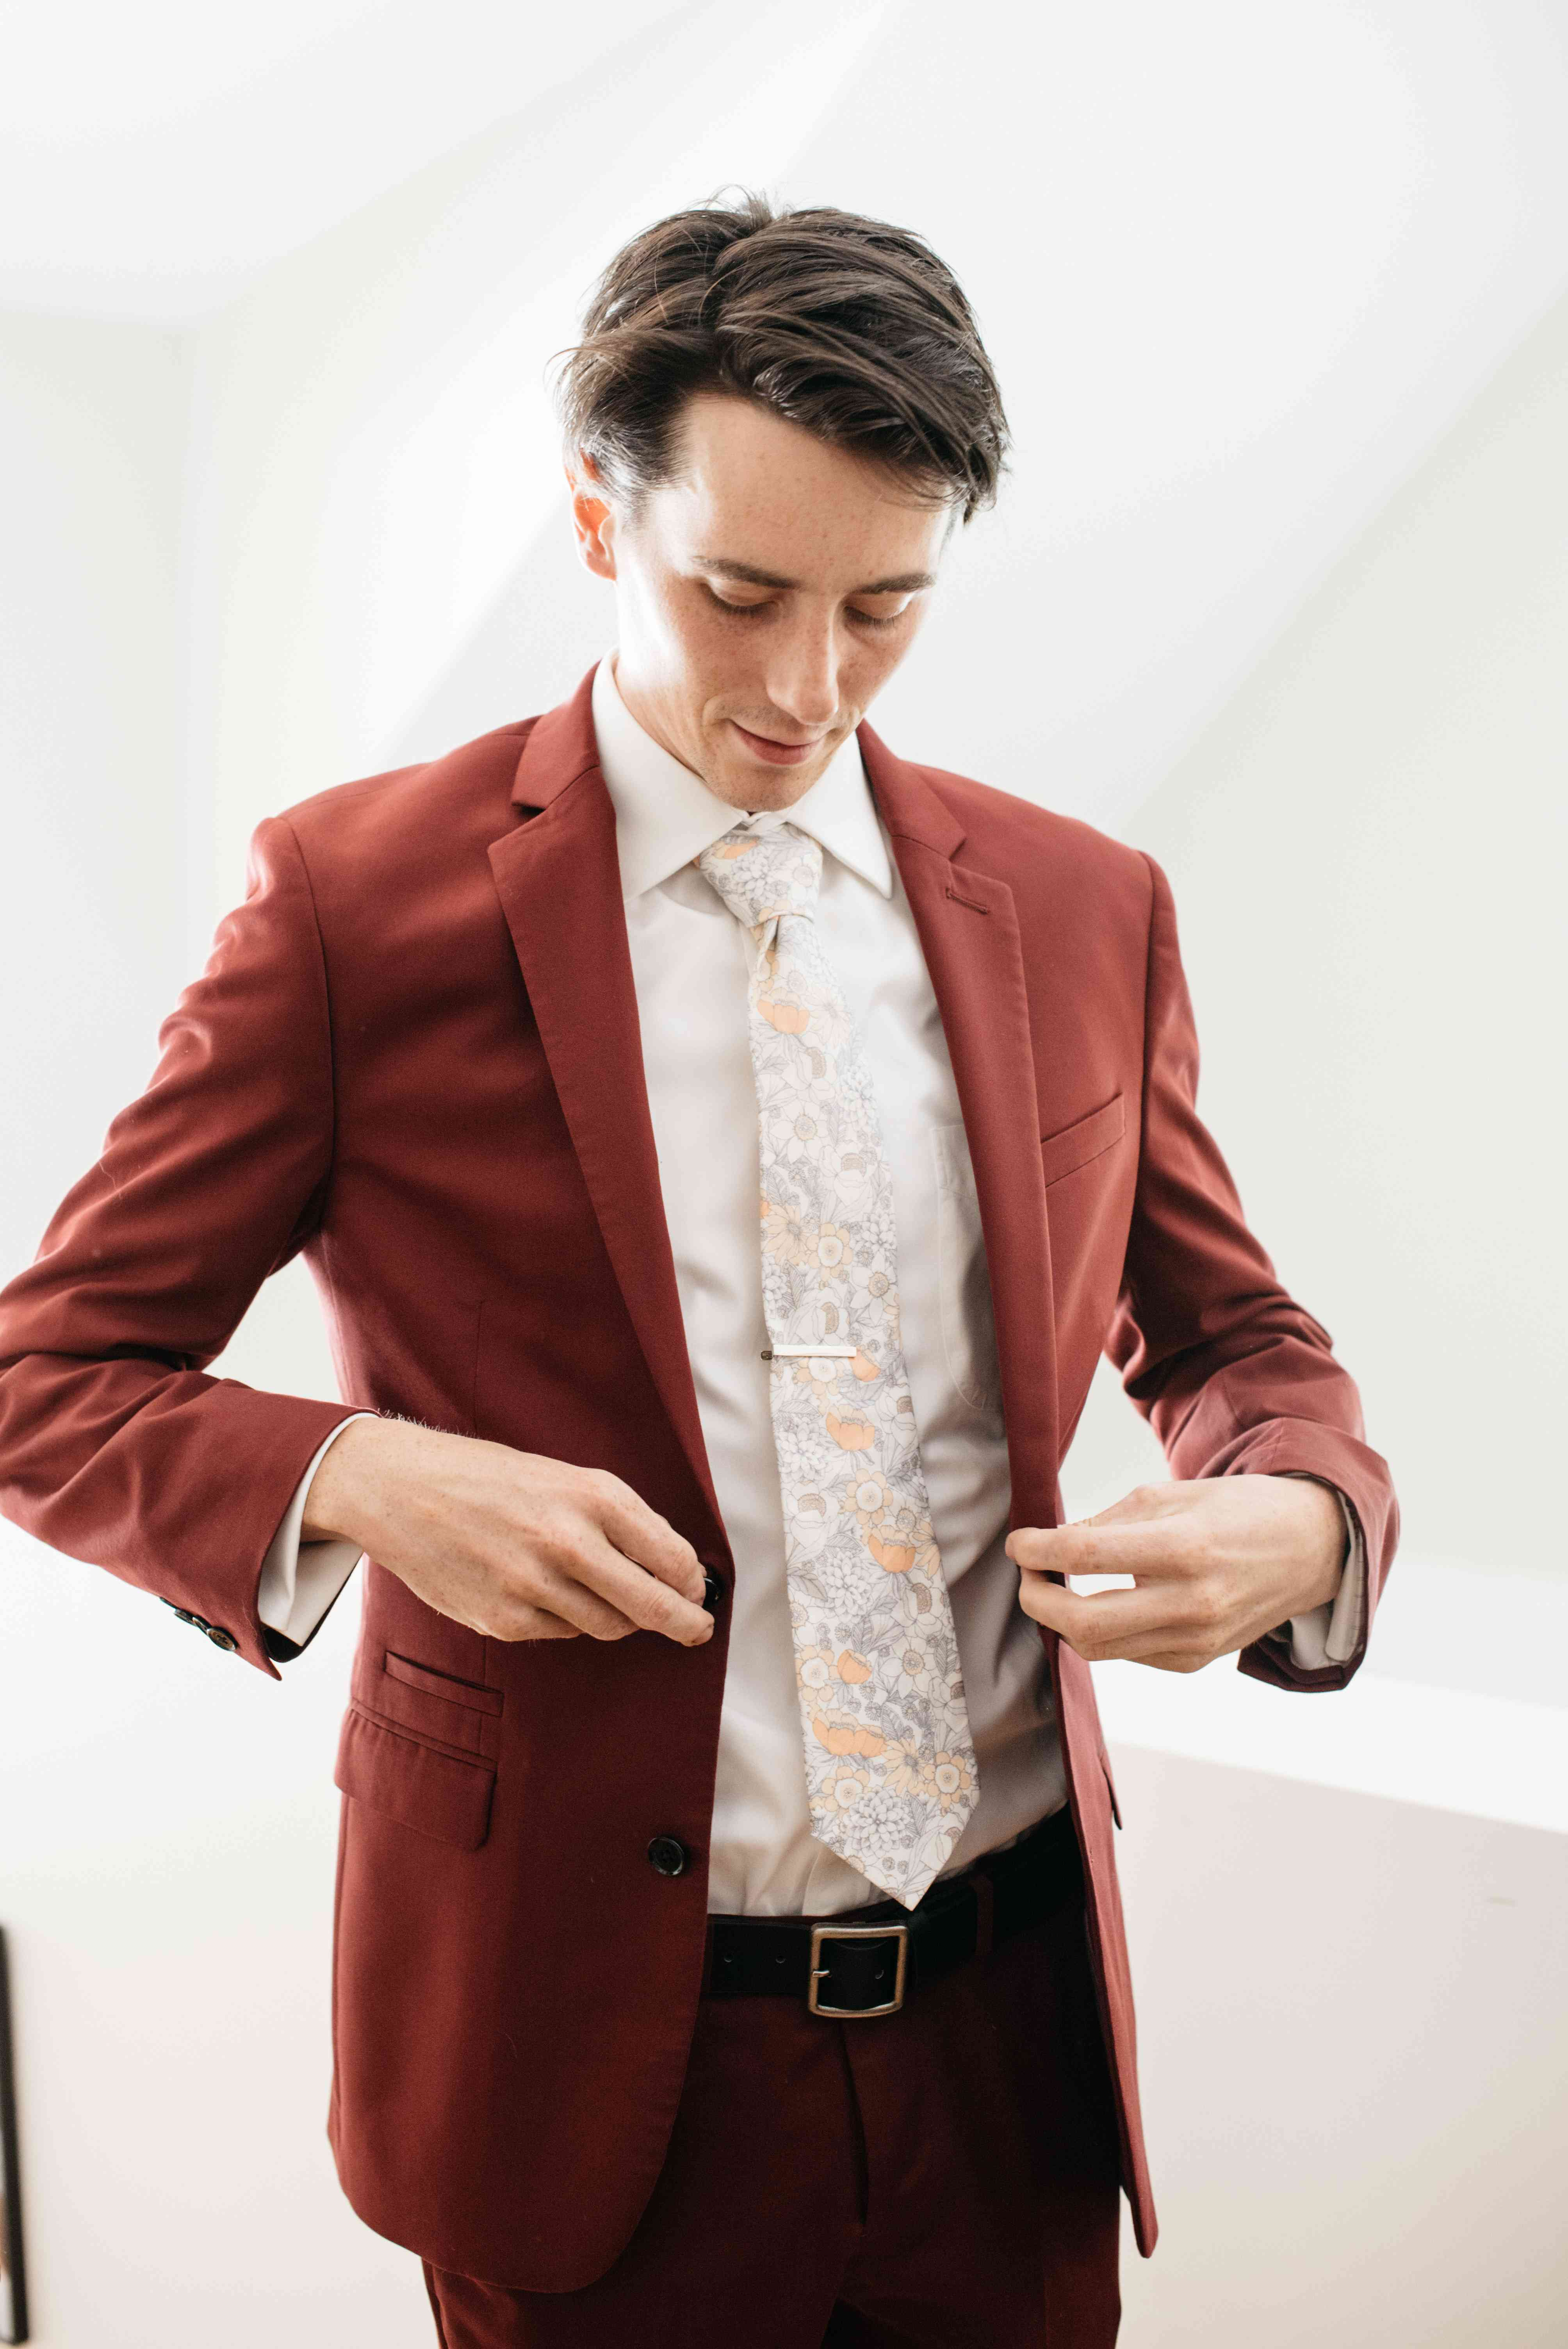 Groom in a red suit